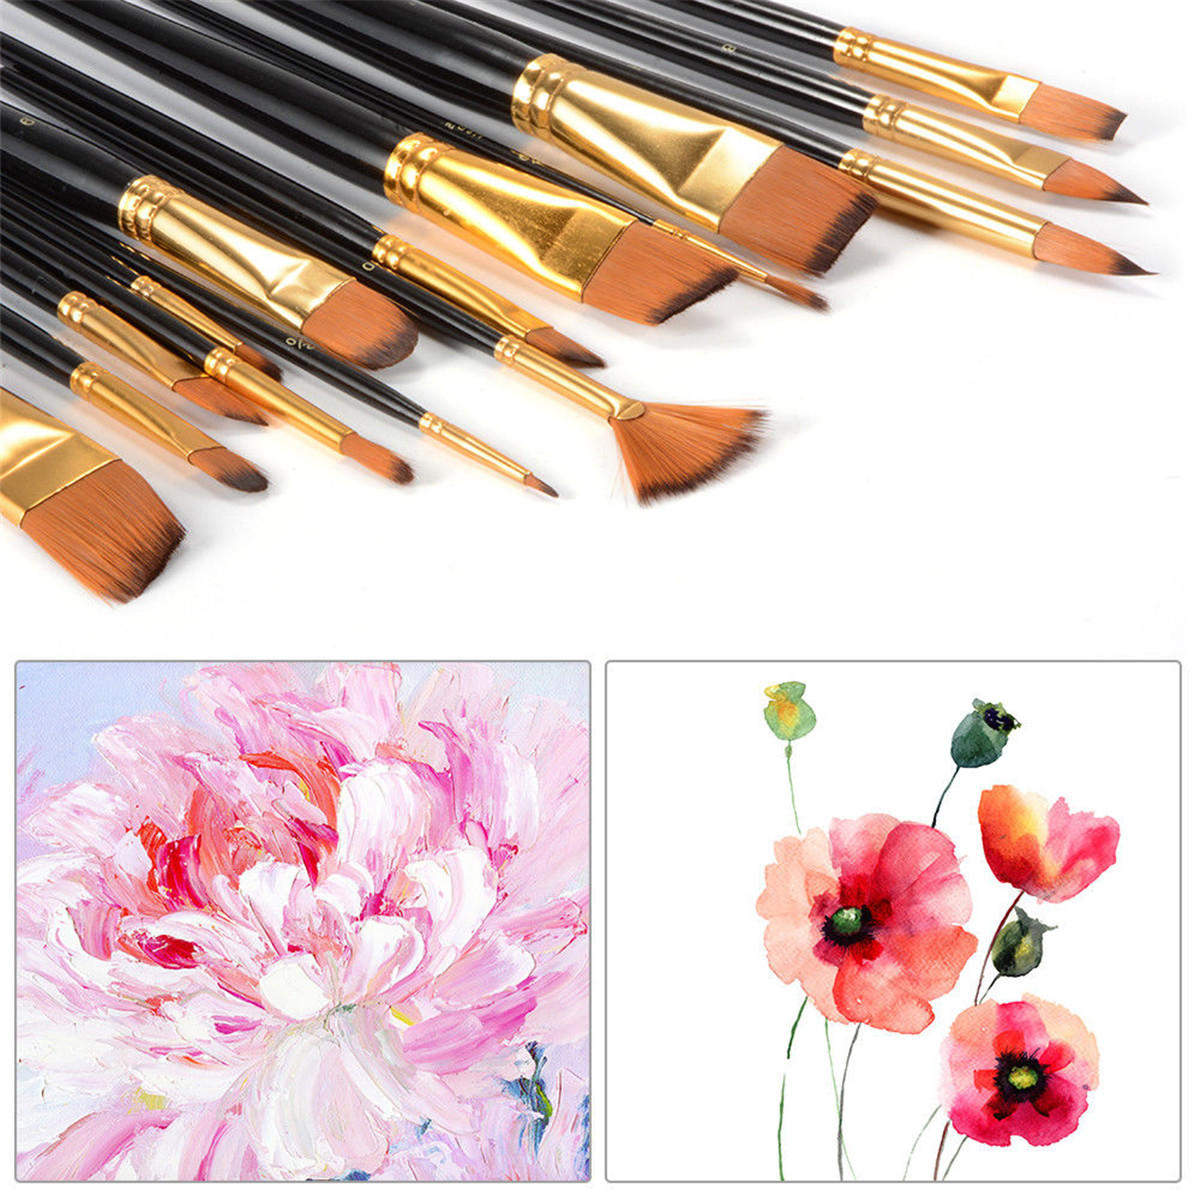 QiLi QL-C150 150 Colors Wood Colored Pencils Artist Painting Oil Color Pencil For School Drawing Sketch Pens Art Supplies Stationery - 8